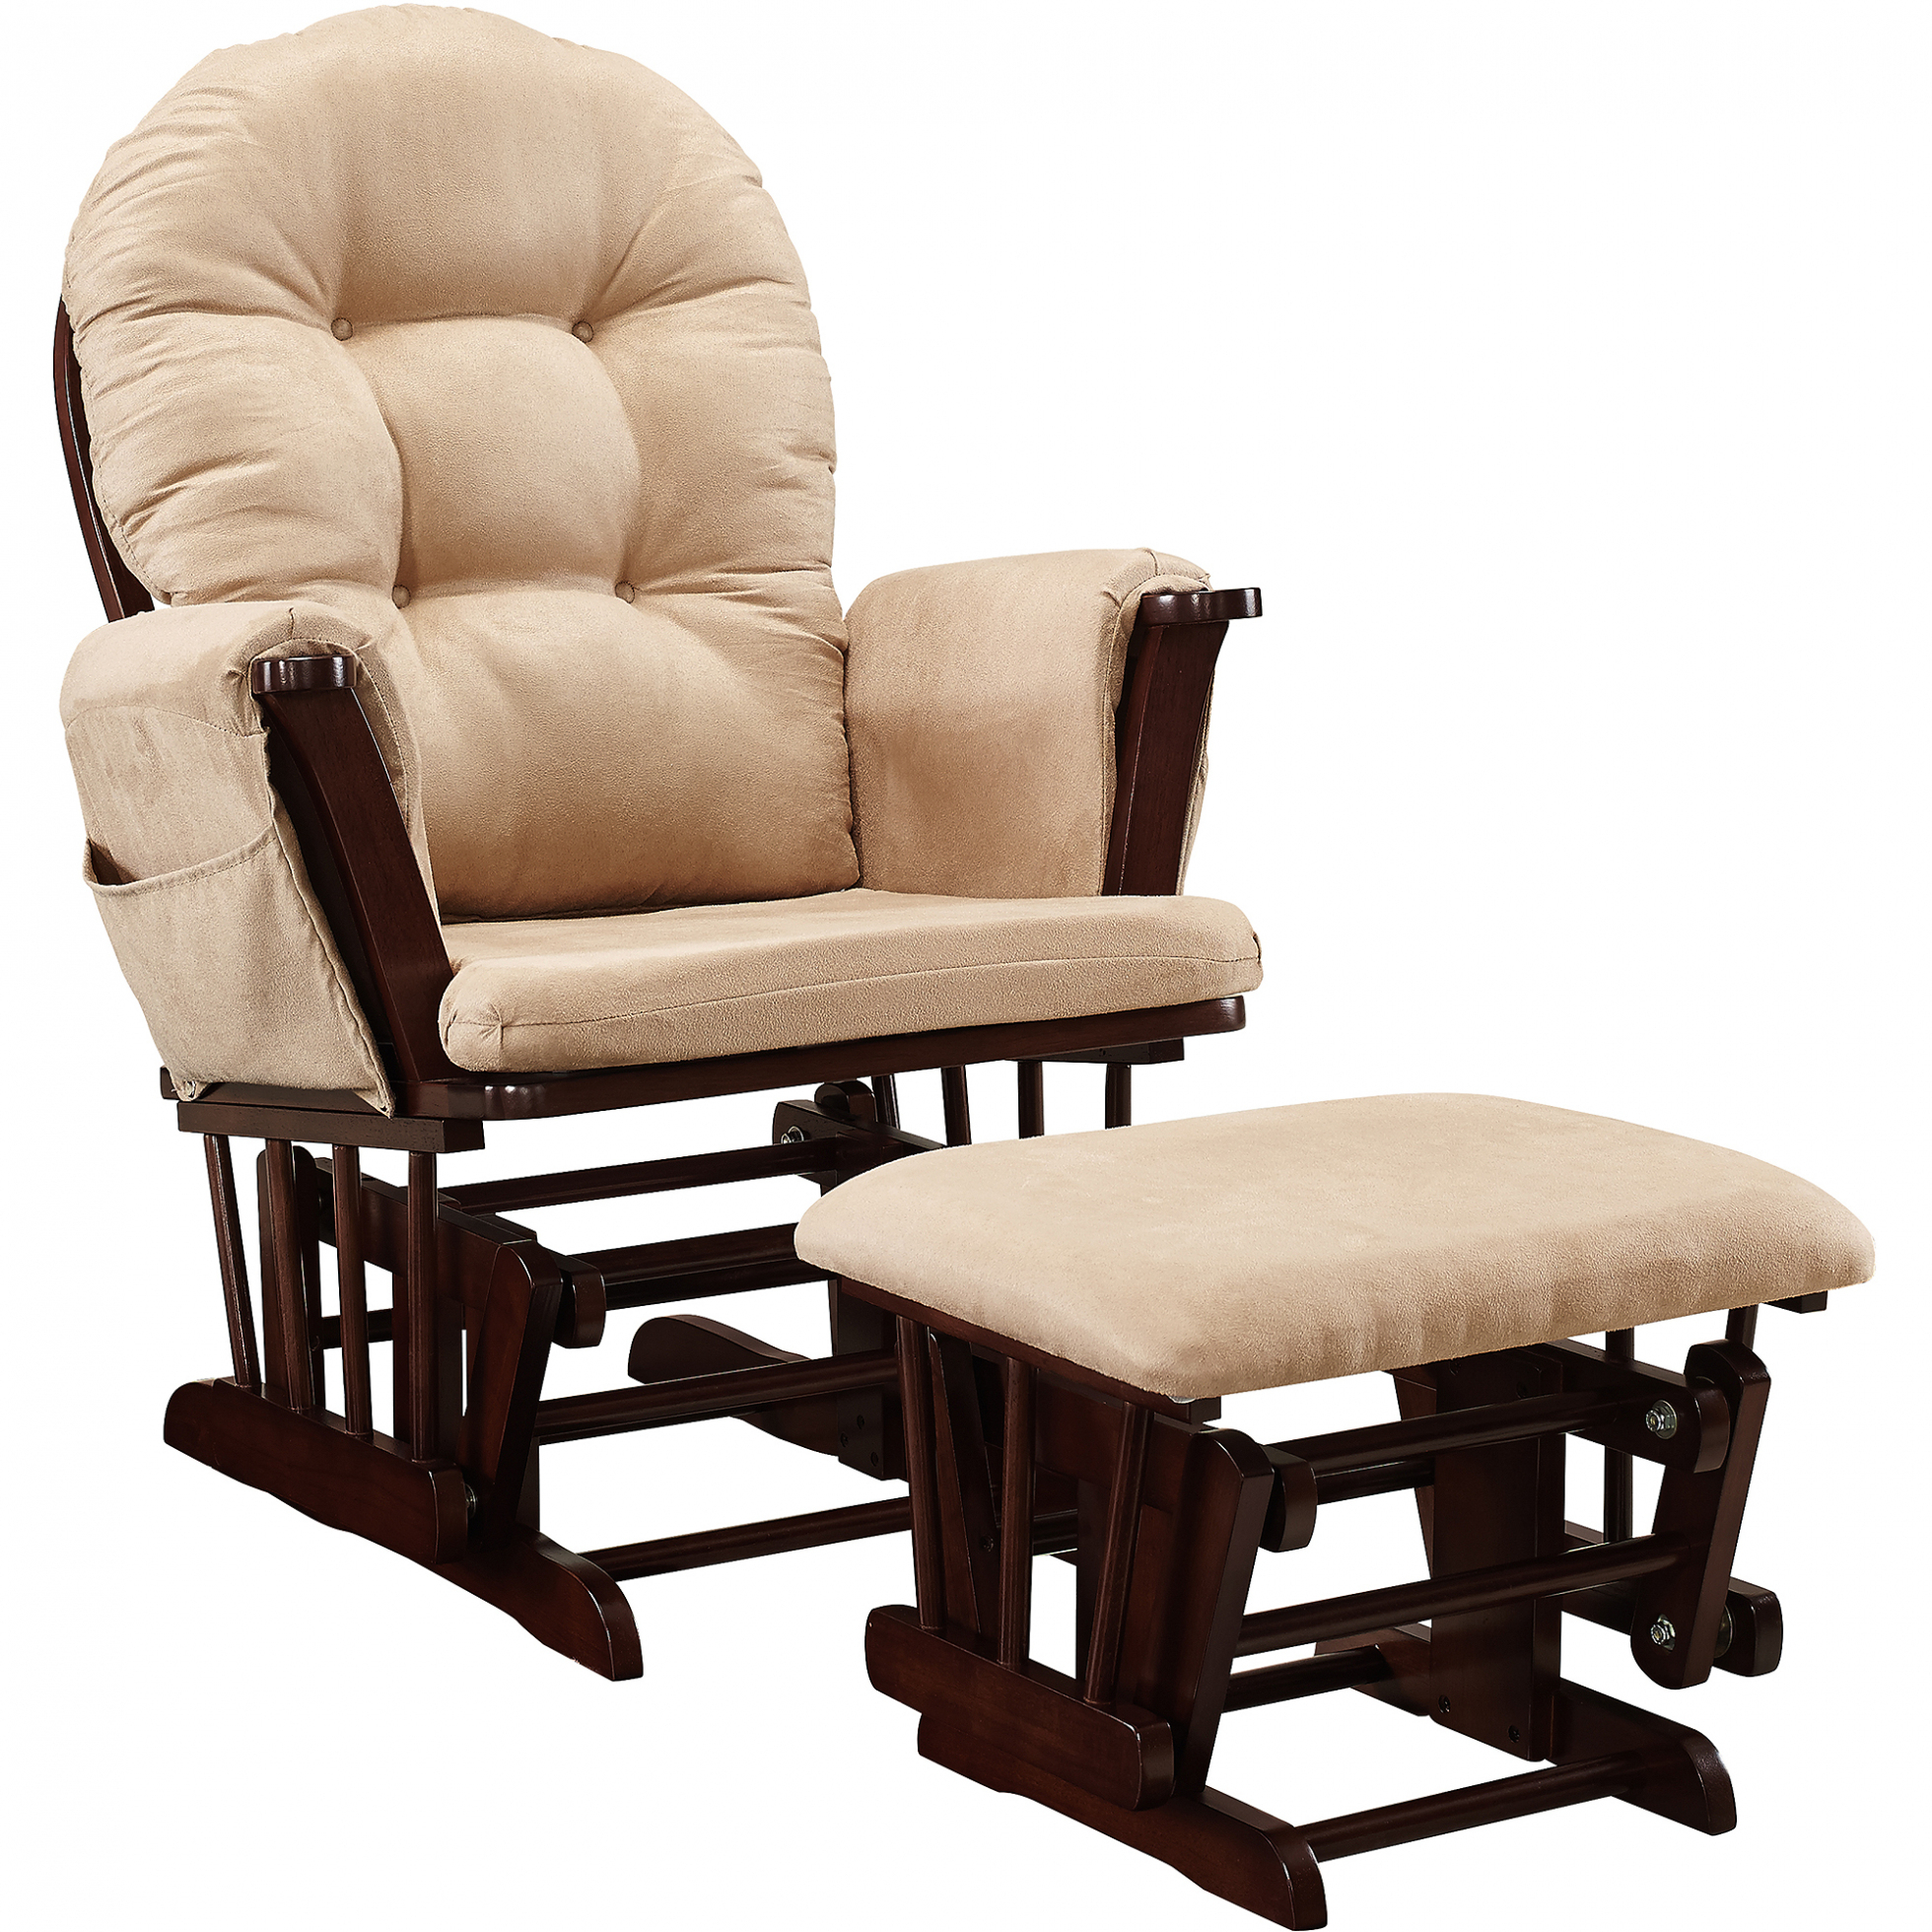 Chairs: Baby Relax Abby Rocker Gray Walmart Inside Entrancing Throughout Abbey Swivel Glider Recliners (View 17 of 20)